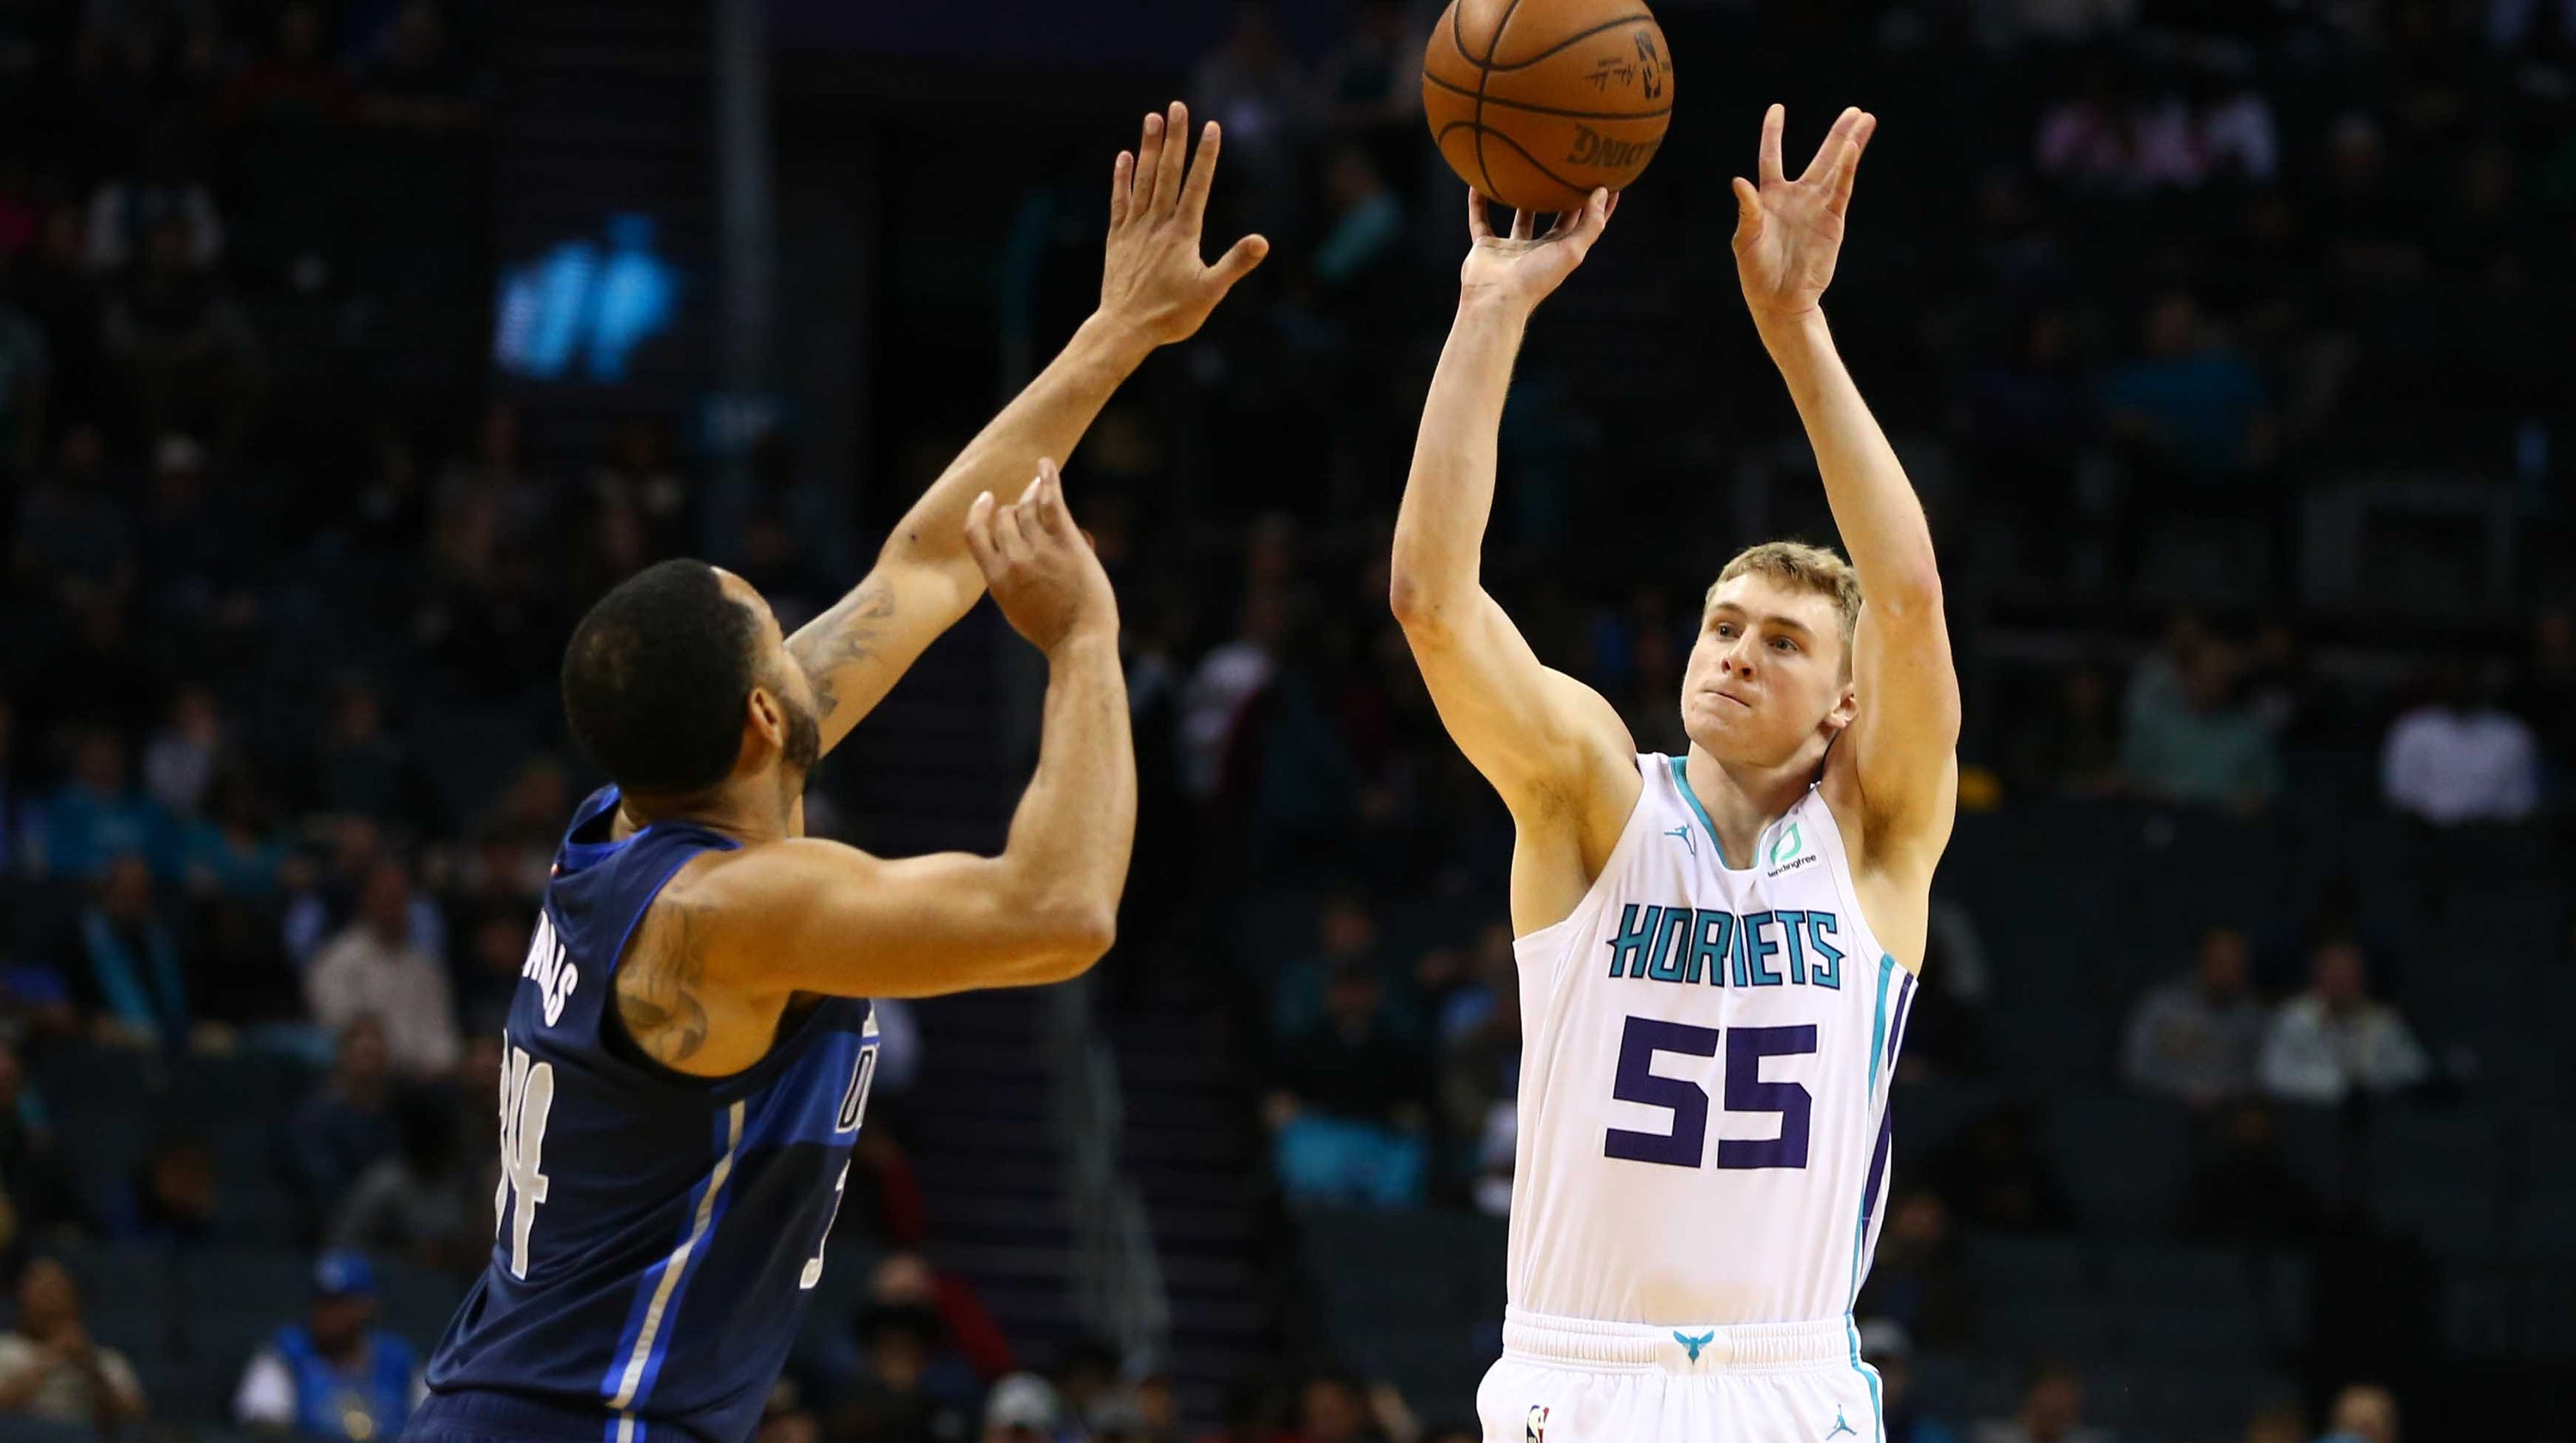 8f9dcddaf4b9 Watch  J.P. Macura scores first NBA basket for Charlotte Hornets against  Dallas Mavericks